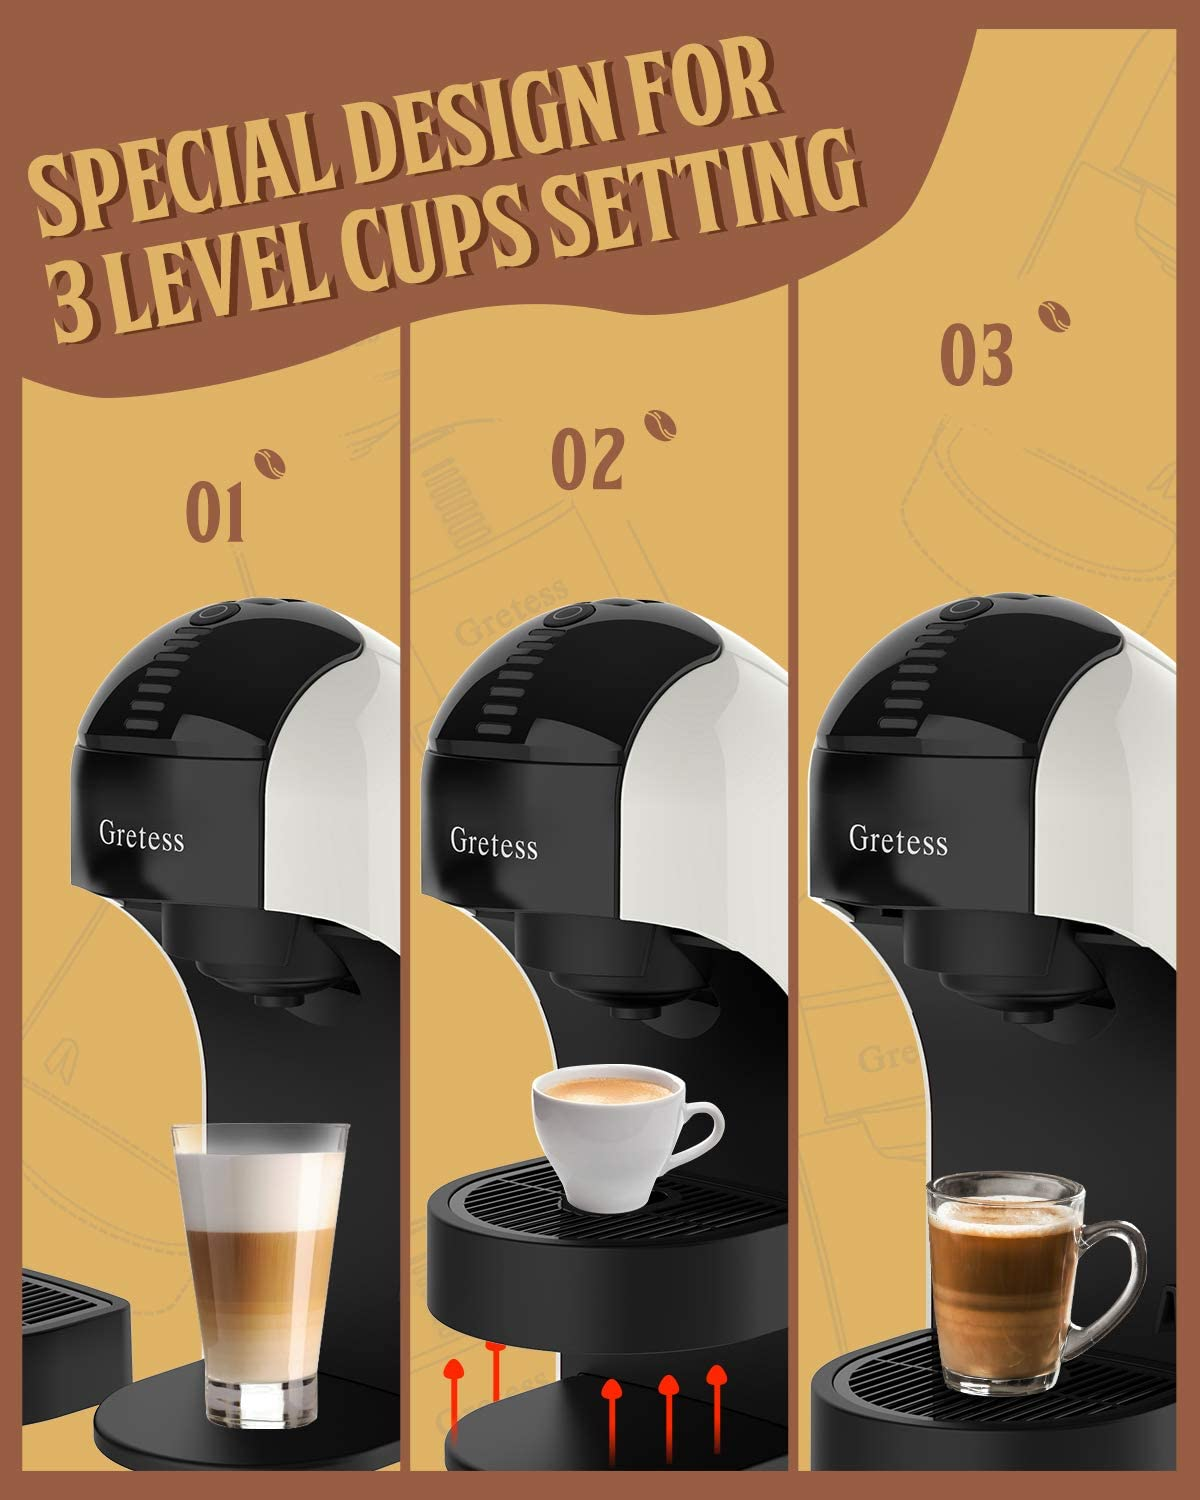 ltalian 15 Bar High Pressure Pump,34 Oz Water Tank 3 Level Cups Settings Compatible with dolce gusto Capsule Cappuccino and Latte Pod machine OPT-XW Perfect for Home Office Gretess Espresso Coffee Machine Capsule Coffee Maker Kitchen Espresso